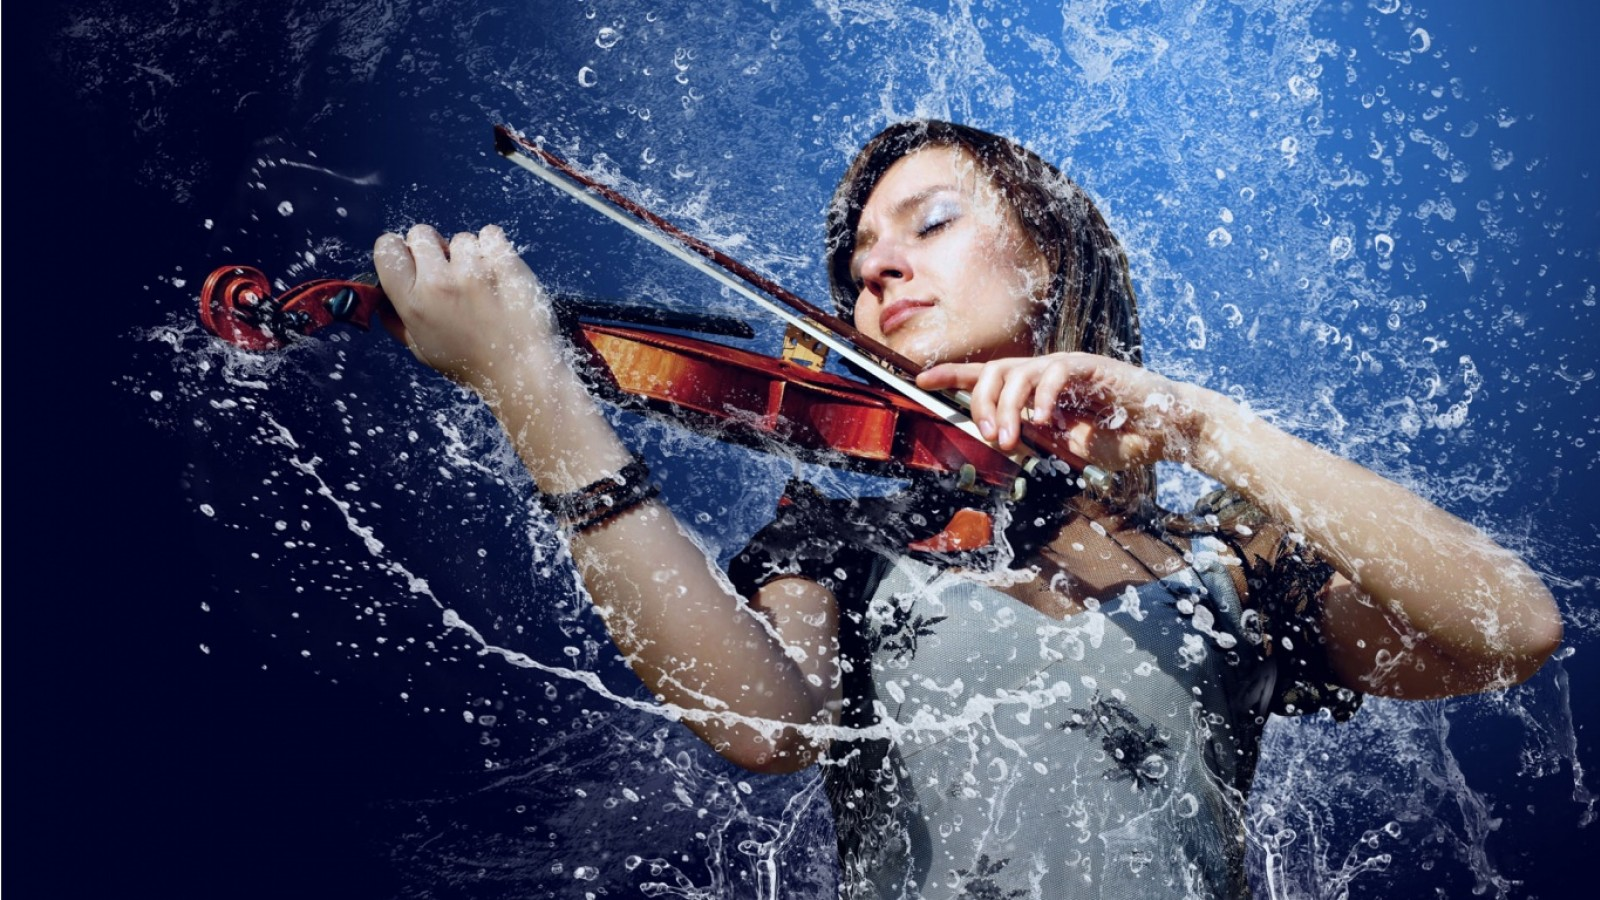 Download Girl Playing Violin In Water Hd Wallpaper for Desktop and Mobiles